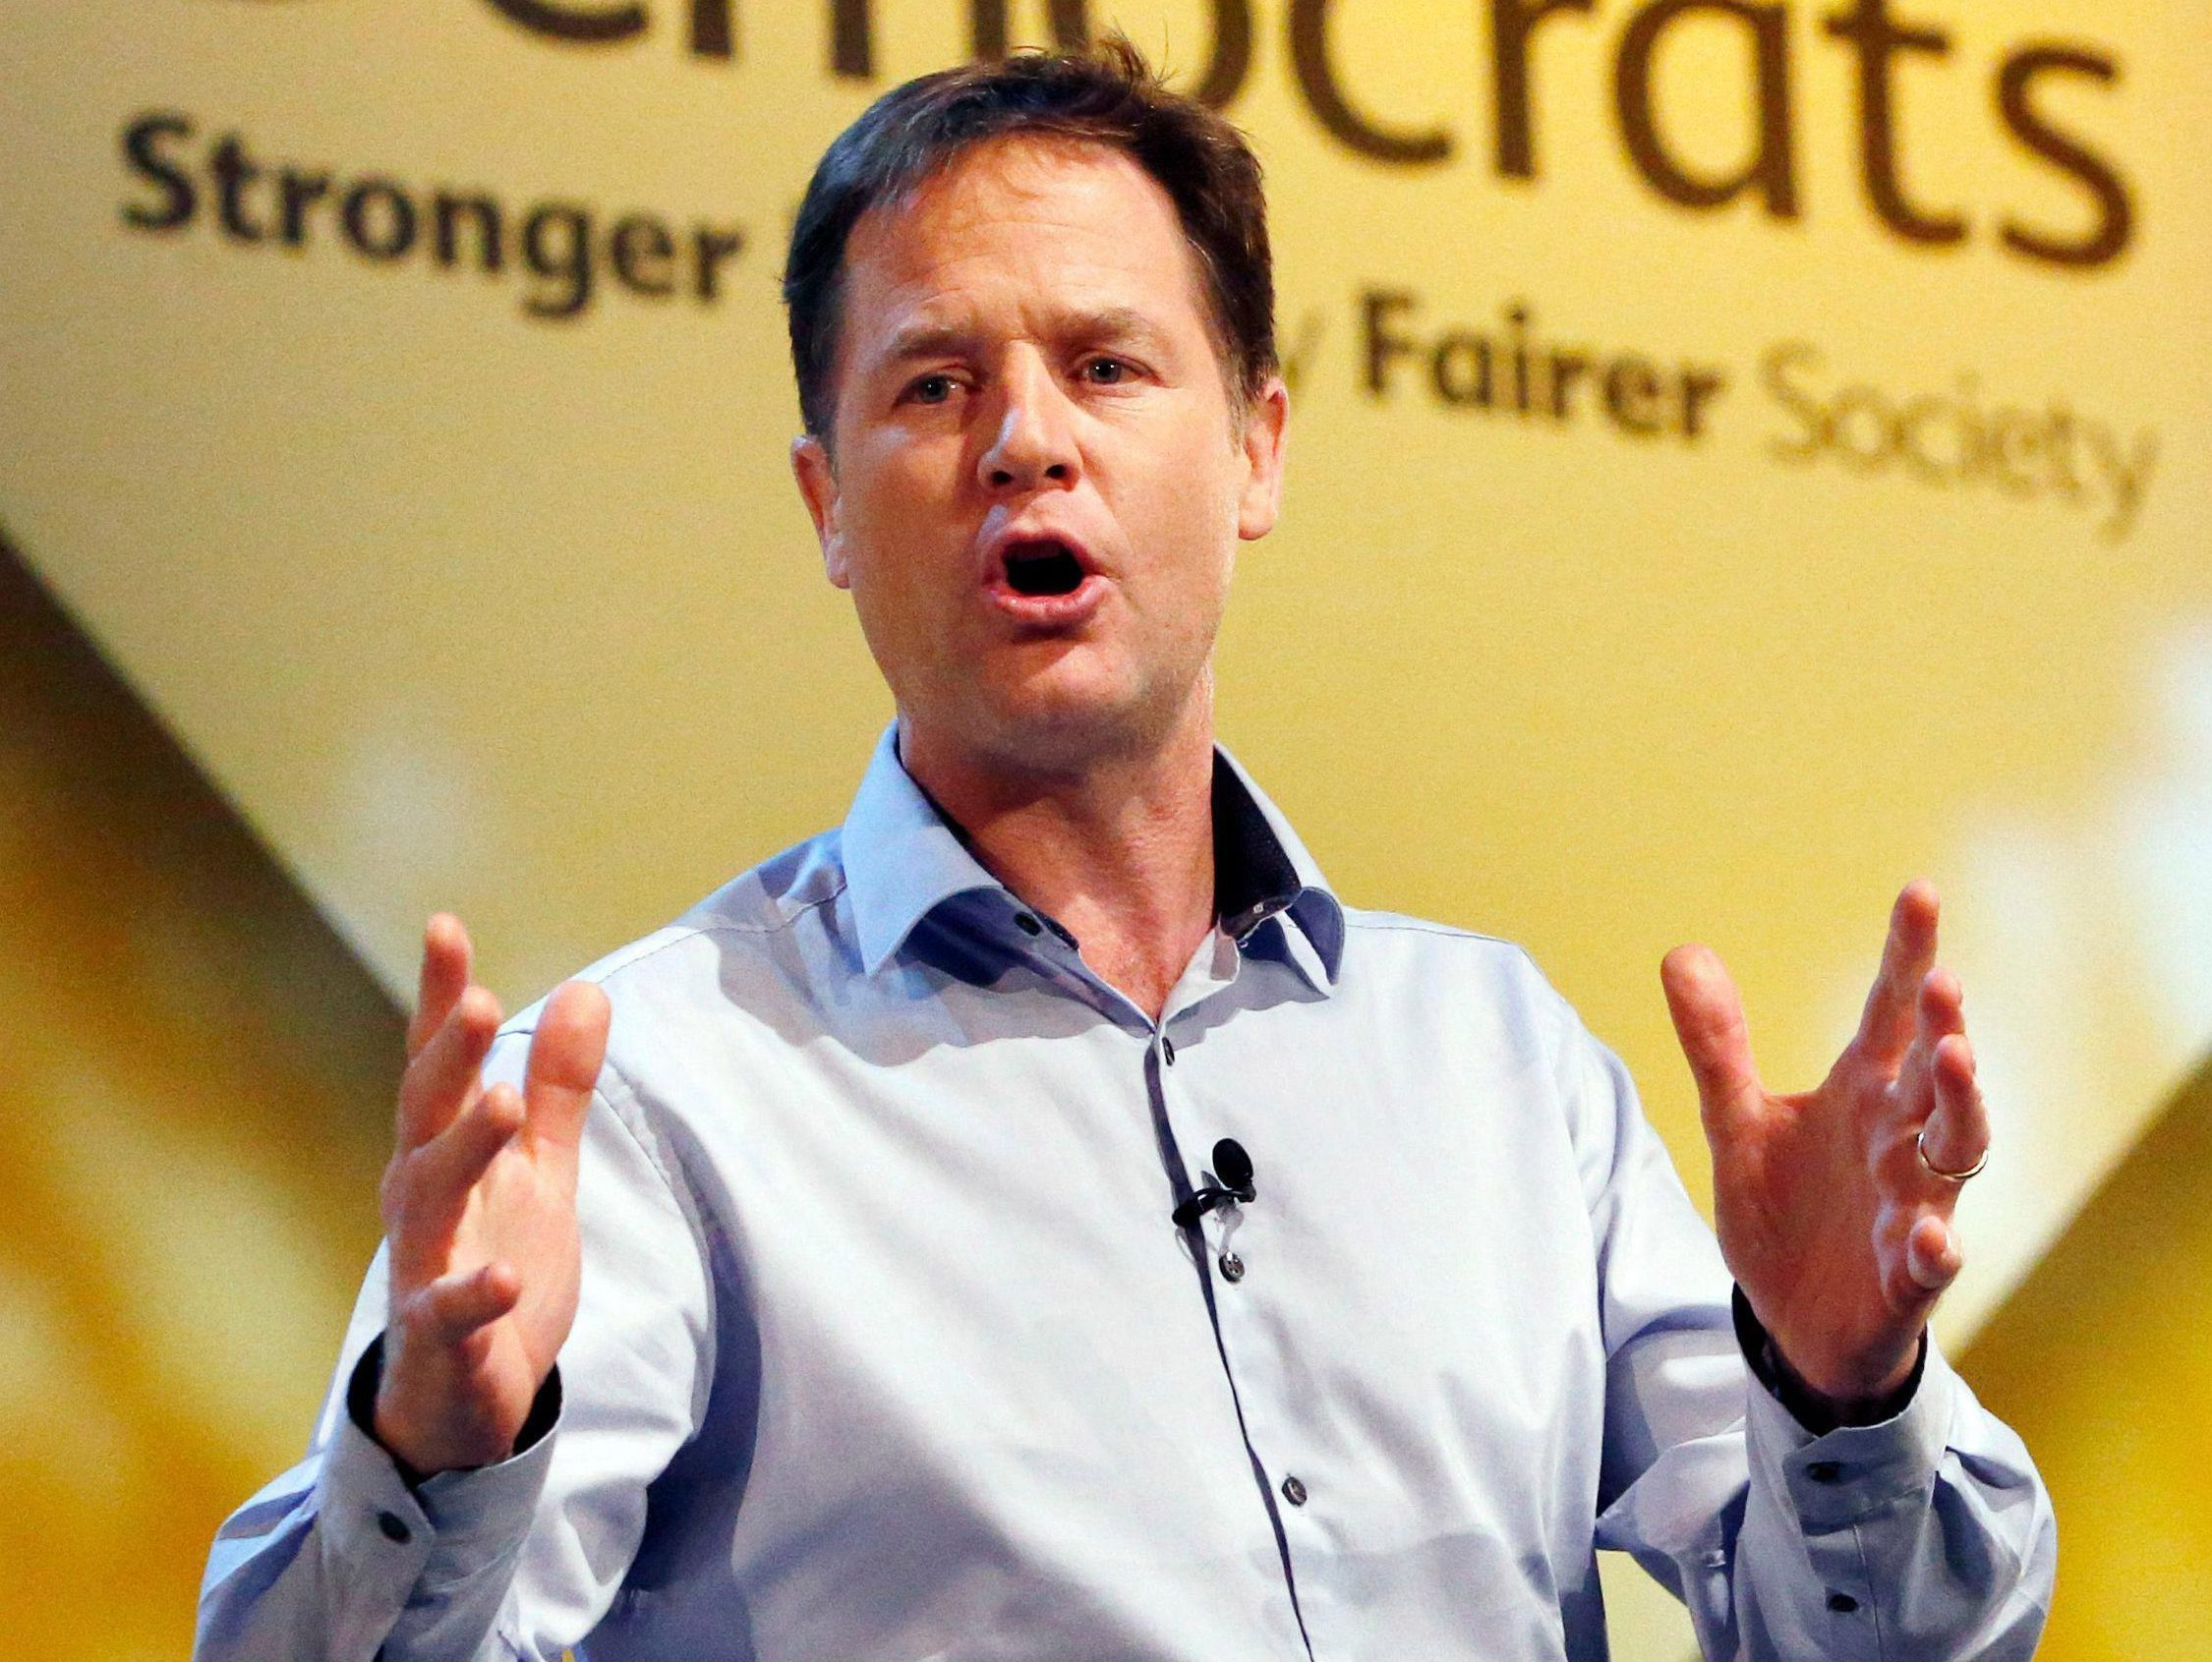 Europhile Nick Clegg admits 'soft Brexit is dead' and Britain WILL quit single market and customs union